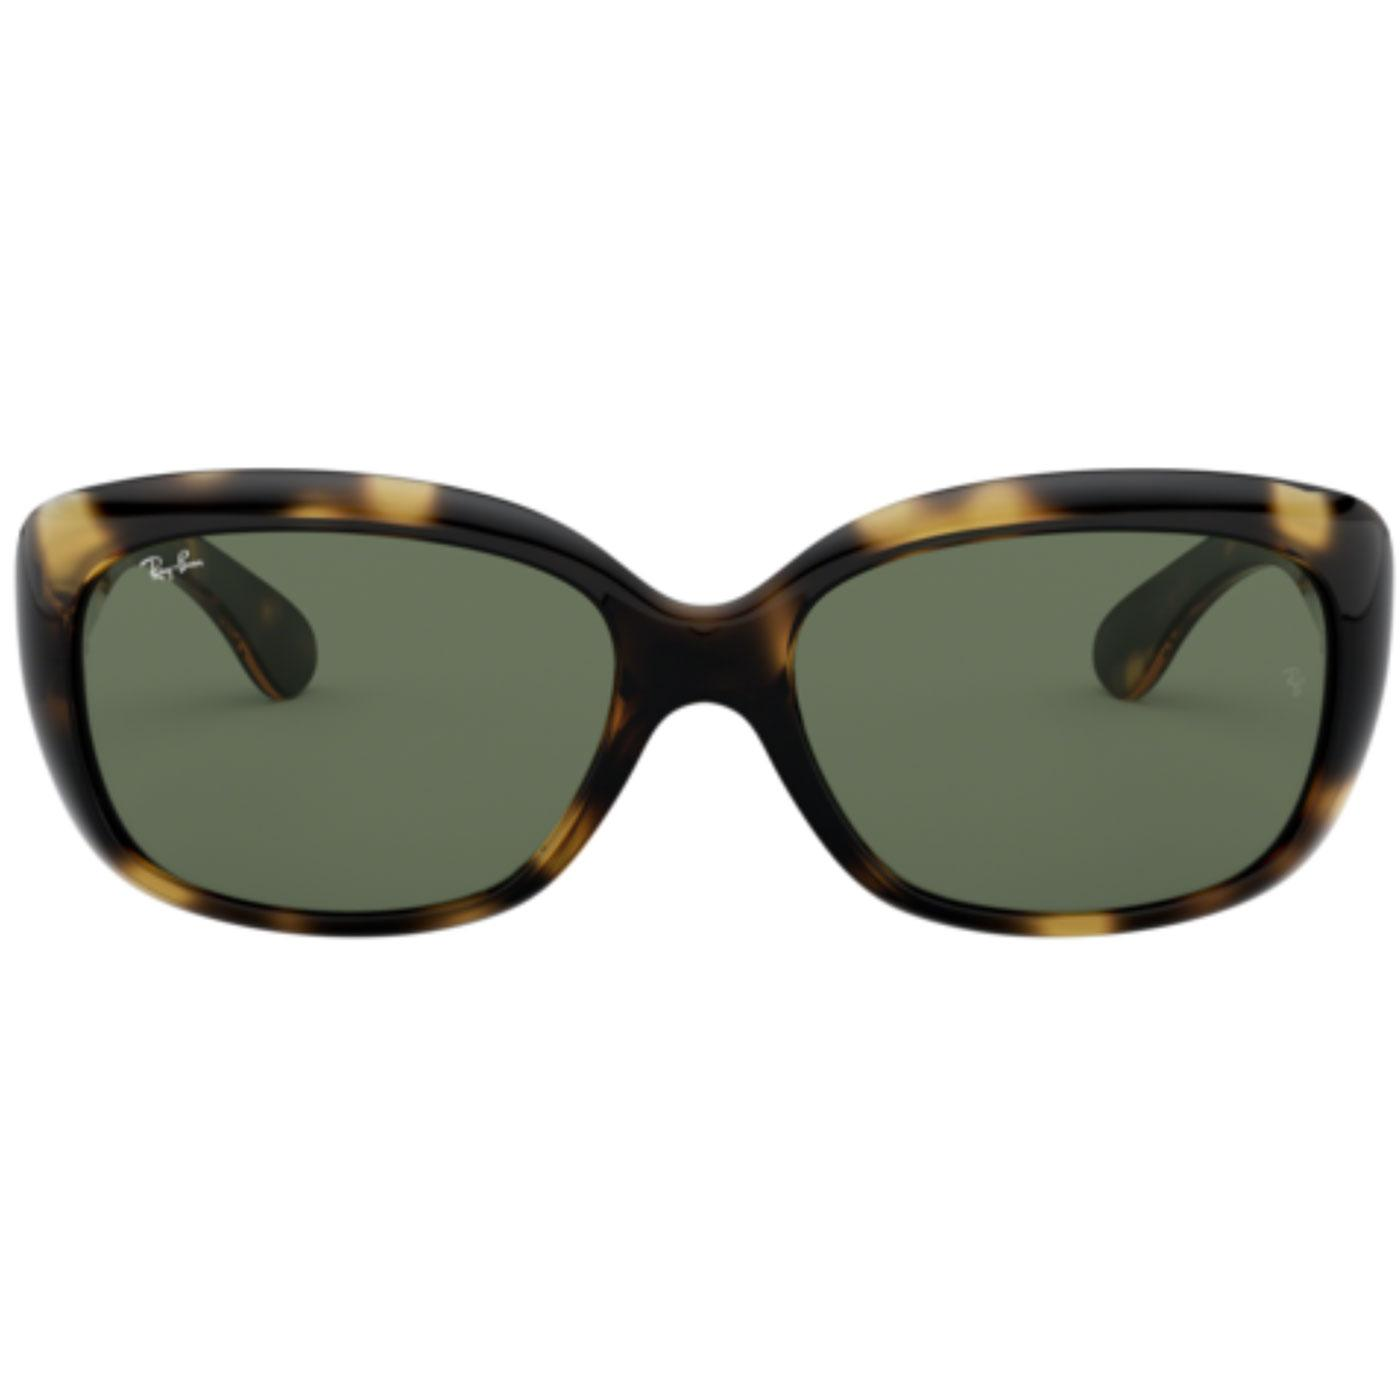 Jackie Ohh Ray-Ban Retro 60s Cats Eye Sunglasses H